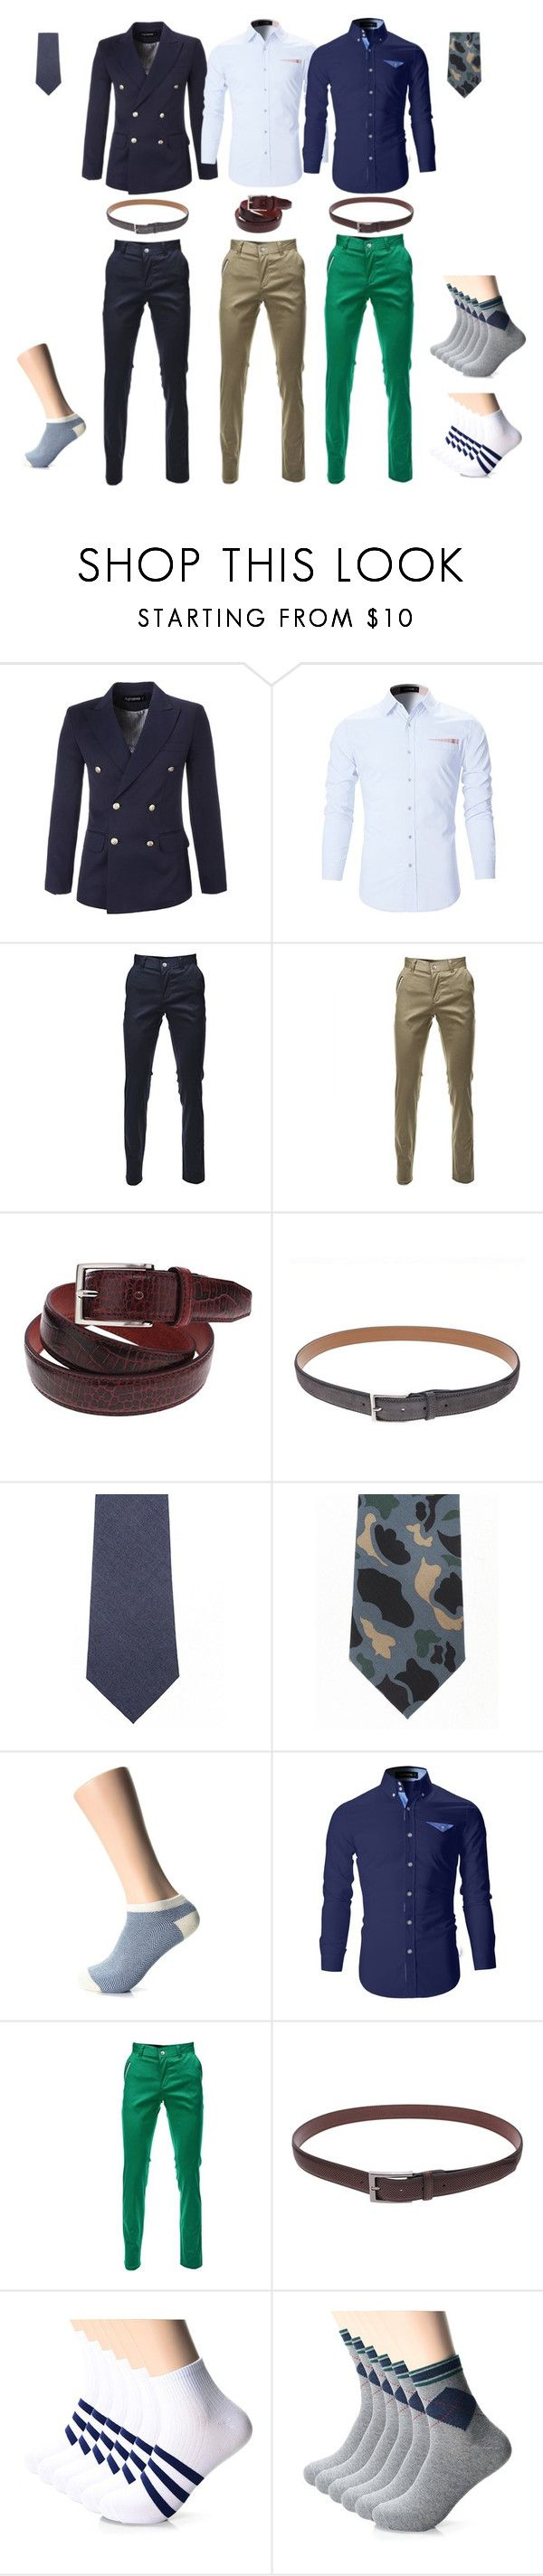 """""""#FLATSEVEN Men's Fashion"""" by flatseven on Polyvore featuring men's fashion and menswear"""